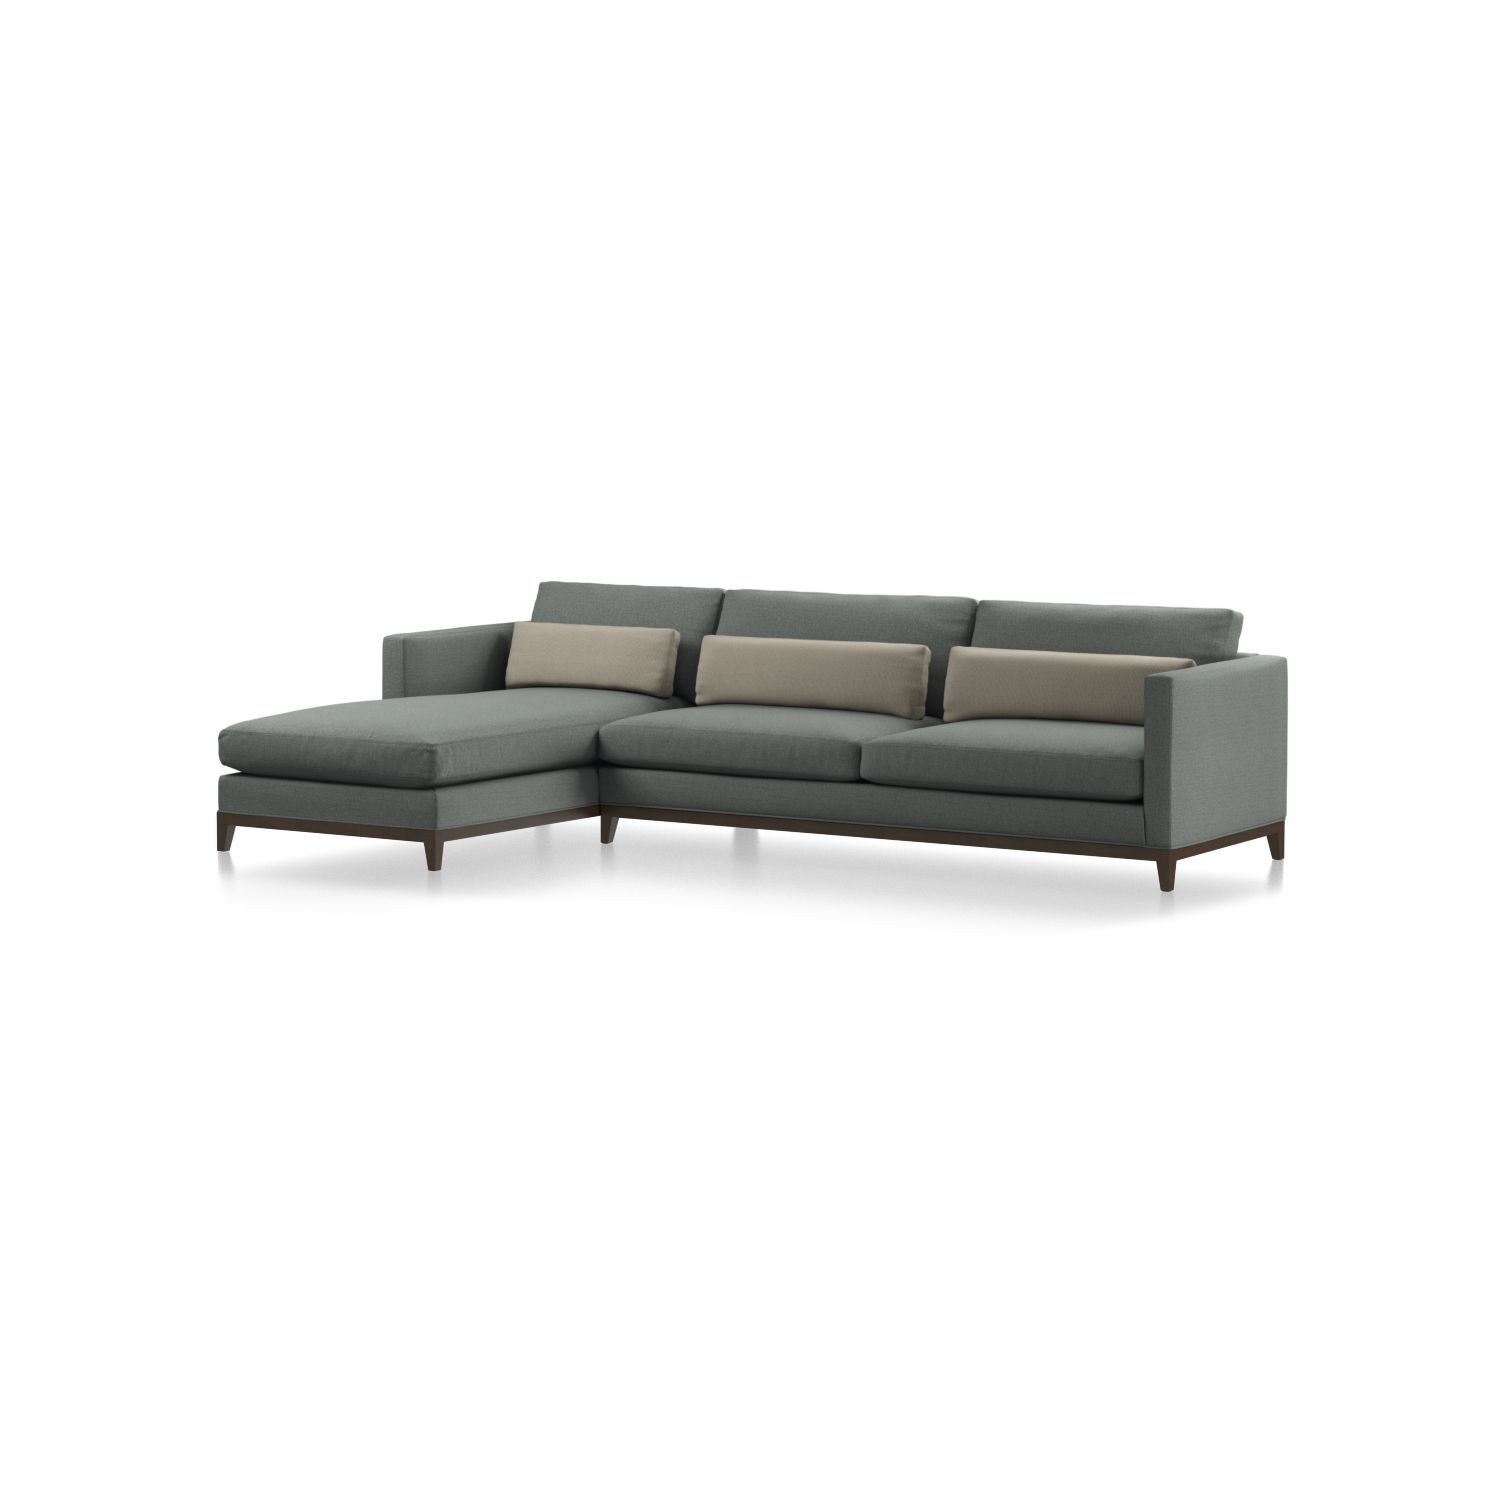 Shop taraval 2 piece left arm chaise sectional with oak base even the exposed solid oak base takes on a relaxed attitude with a warm pecan finish